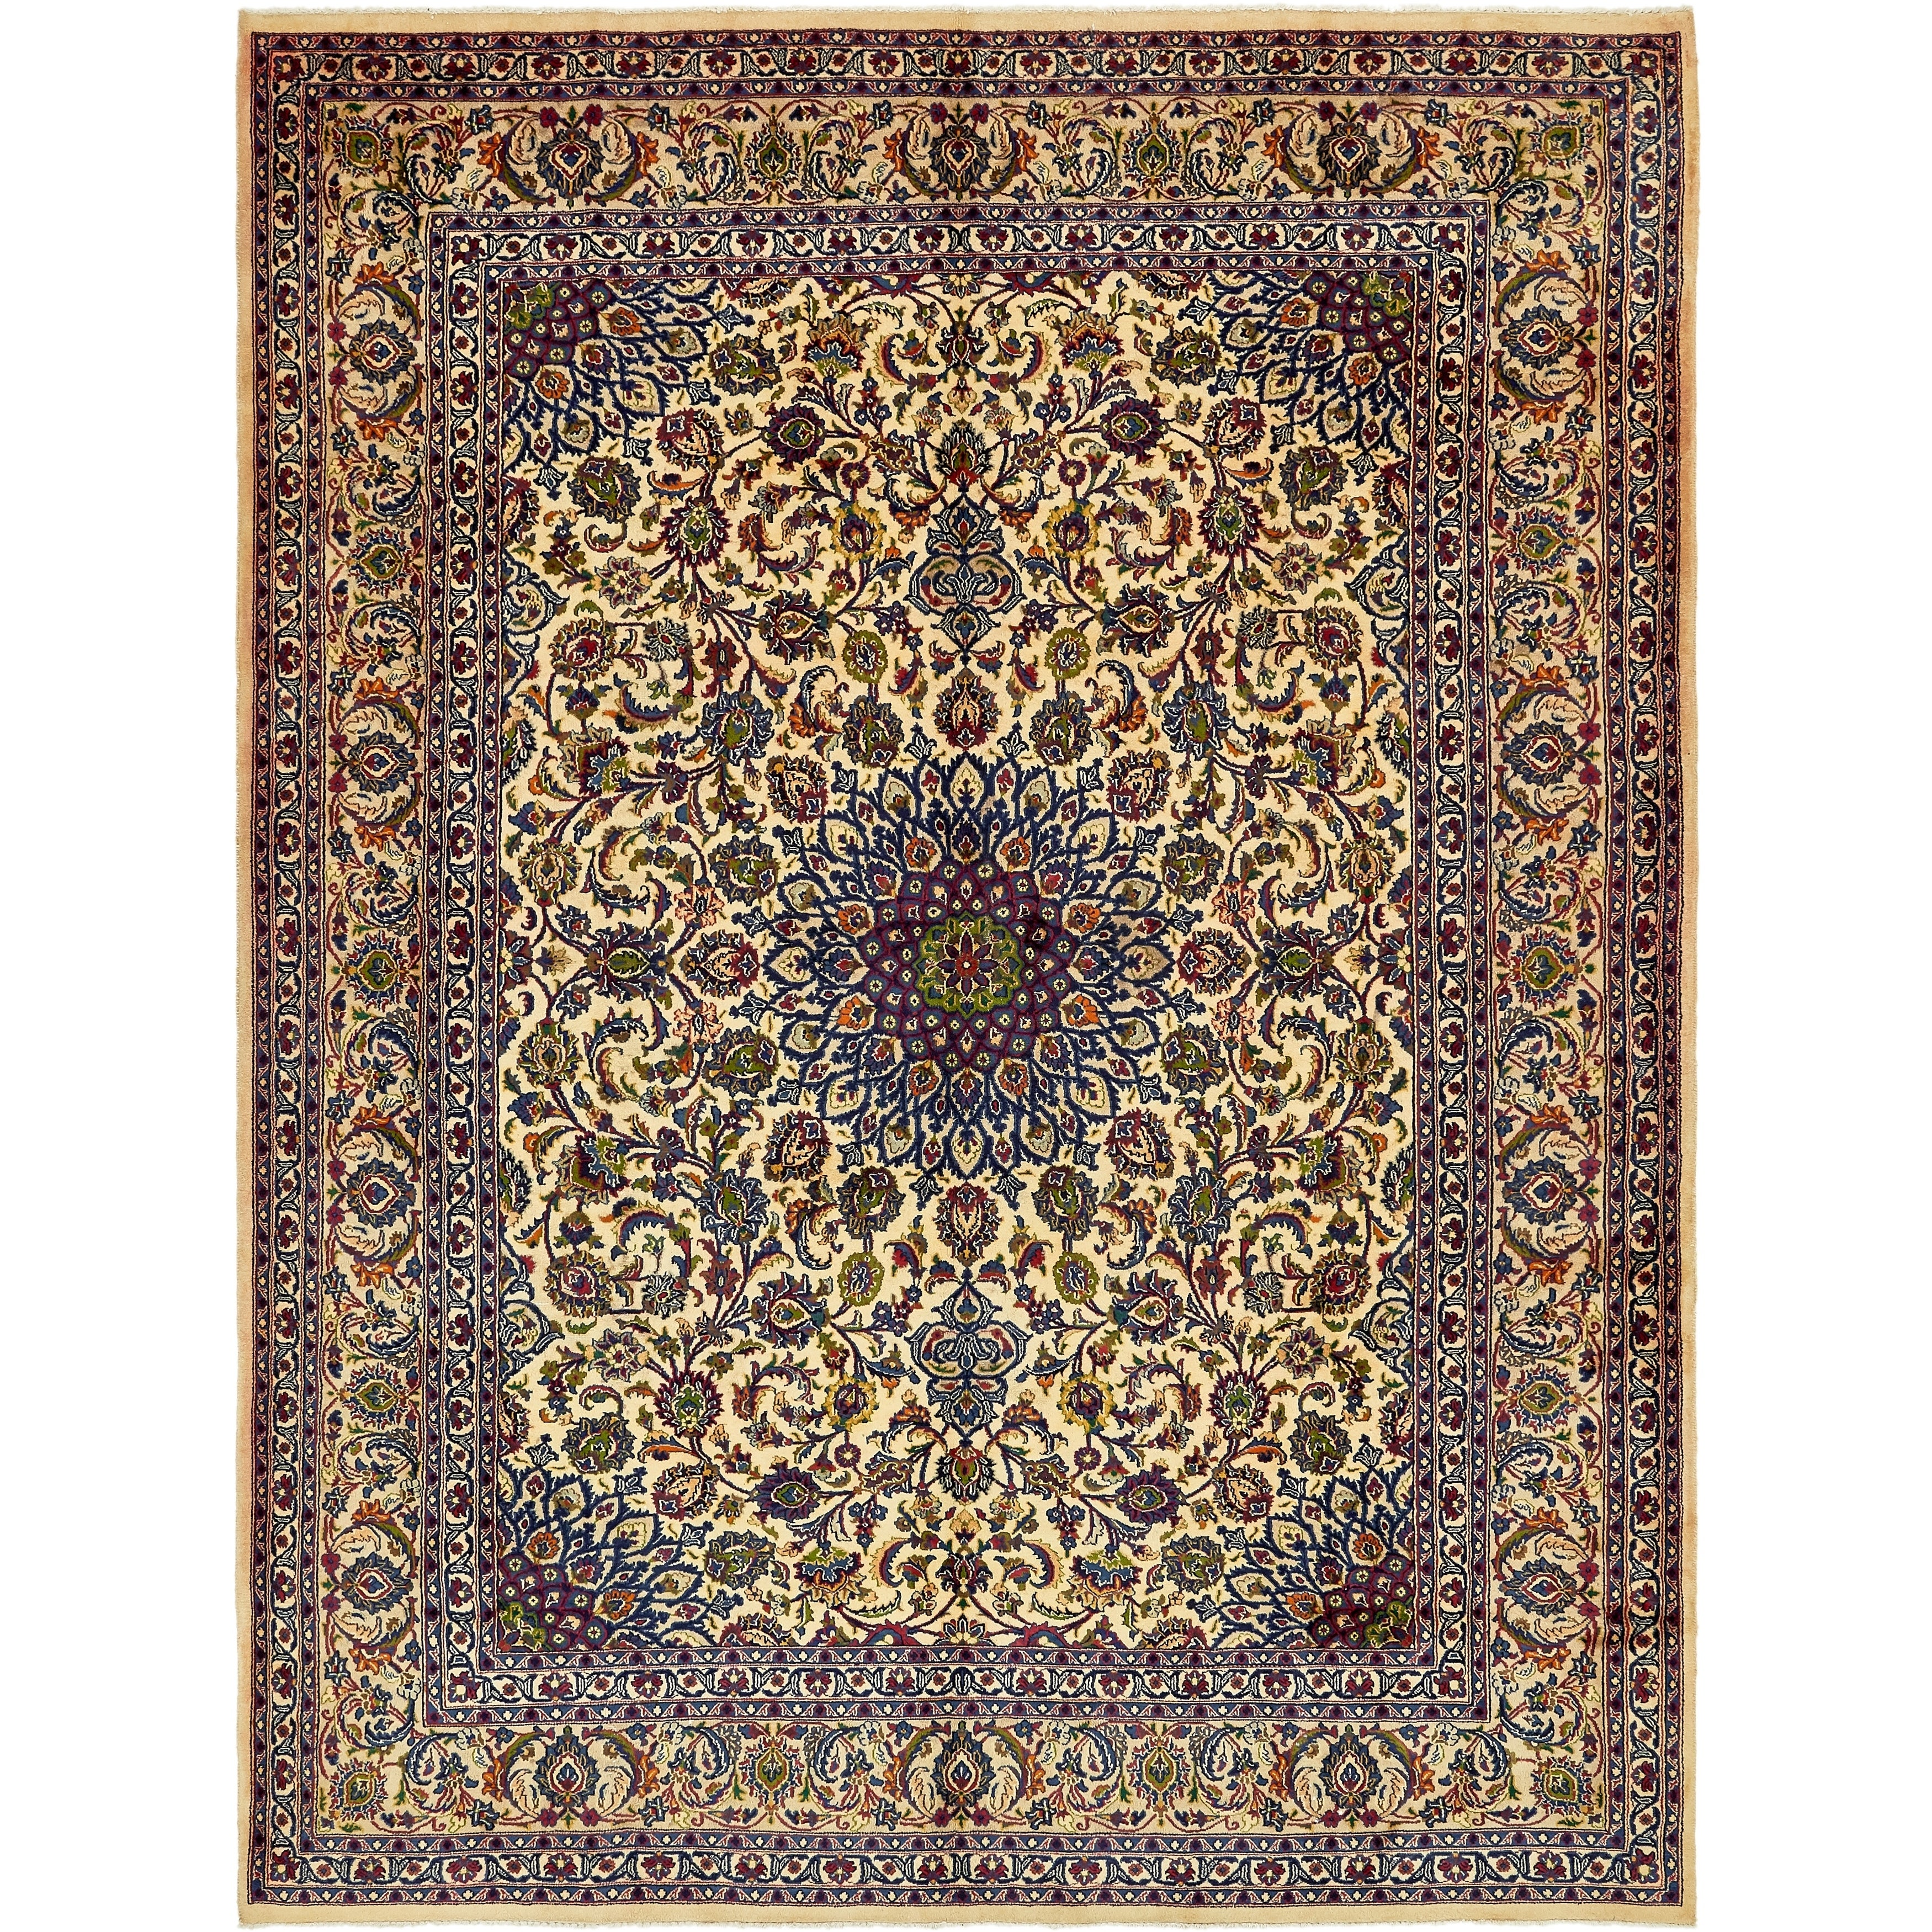 Hand Knotted Kashmar Semi Antique Wool Area Rug - 9 8 x 12 9 (Ivory - 9 8 x 12 9)